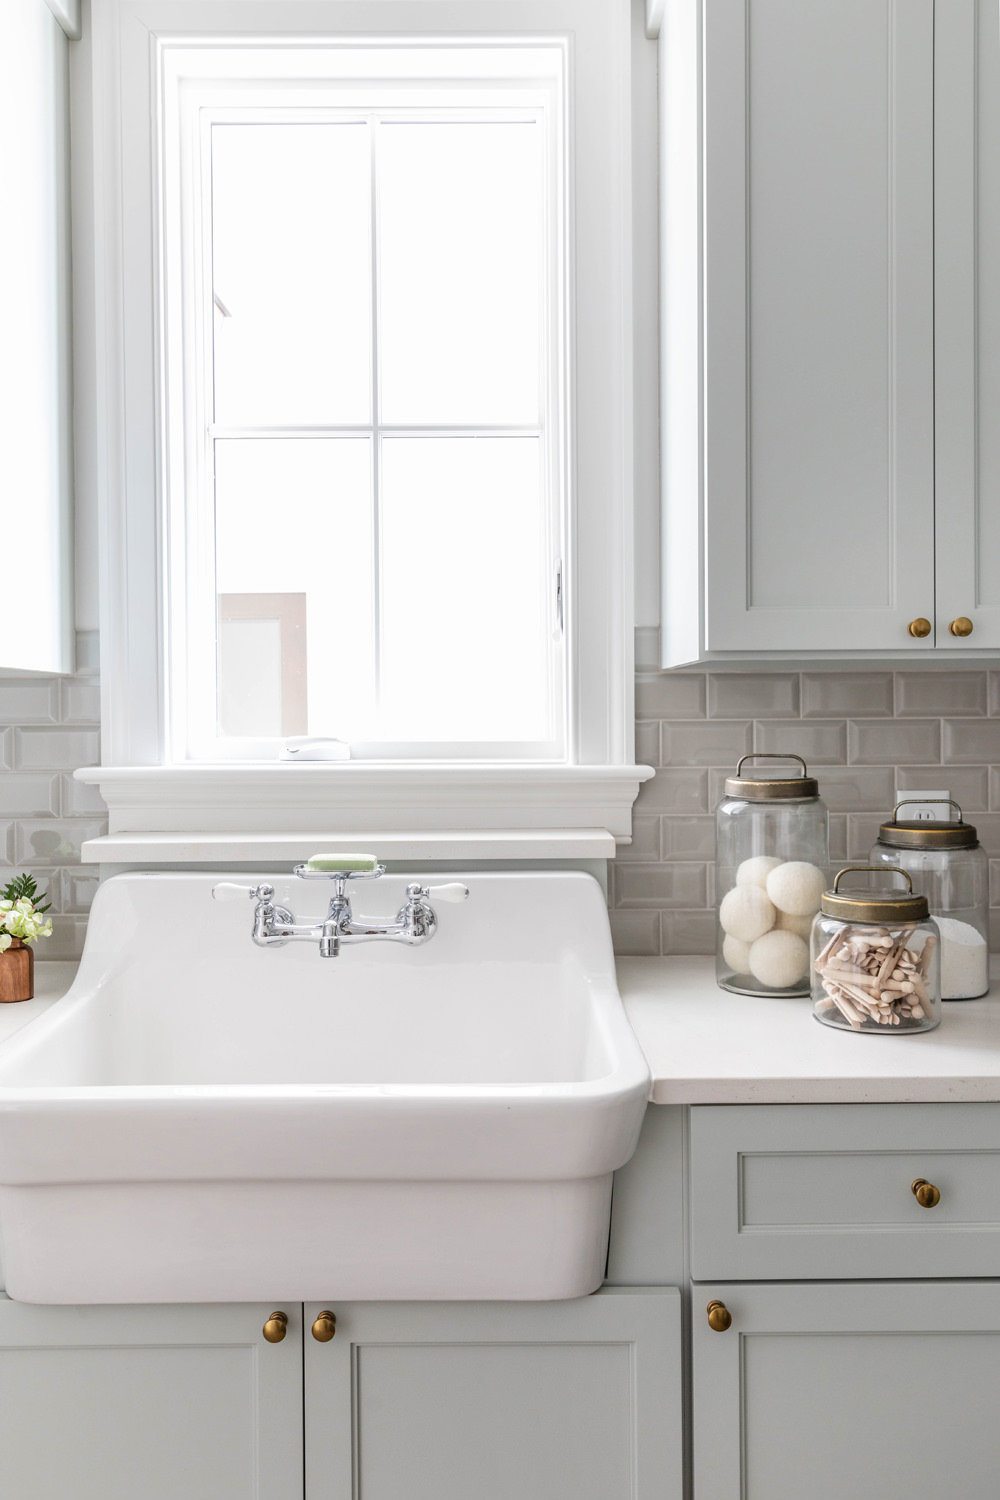 Sherwin-Williams-Silver-Strand-Laundry-Room-with-Kohler-Utility-Sink-and-Brick-Herringbone-Floor-3